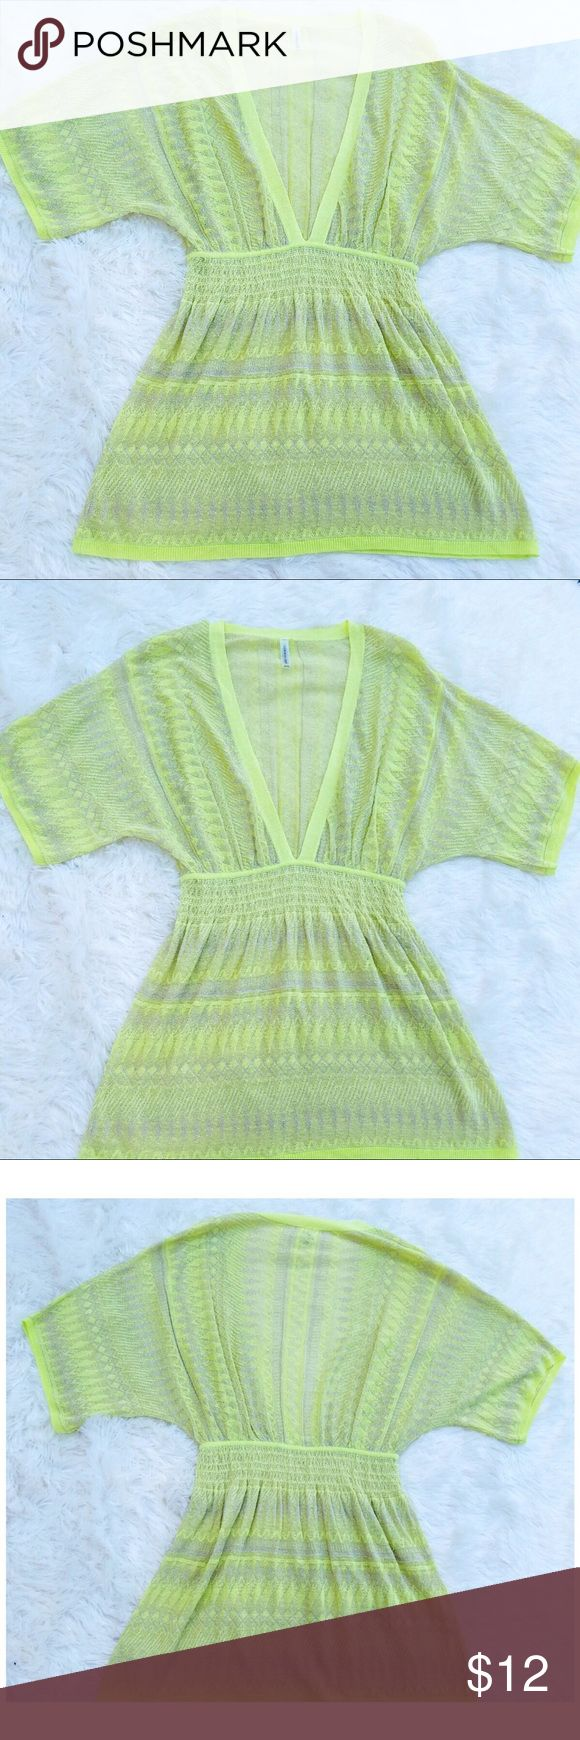 Victoria's secret neon green swim cover up xs/s Neon green with silver cover up  Gently used  Victoria's secret  Size : xs/s  Bundle to save 15% 💵❗️  OPEN TO OFFERS 🤗  Follow & Tag:  IG : ShopBellaVictoria  Fb: BellaVictoria Victoria's Secret Swim Coverups